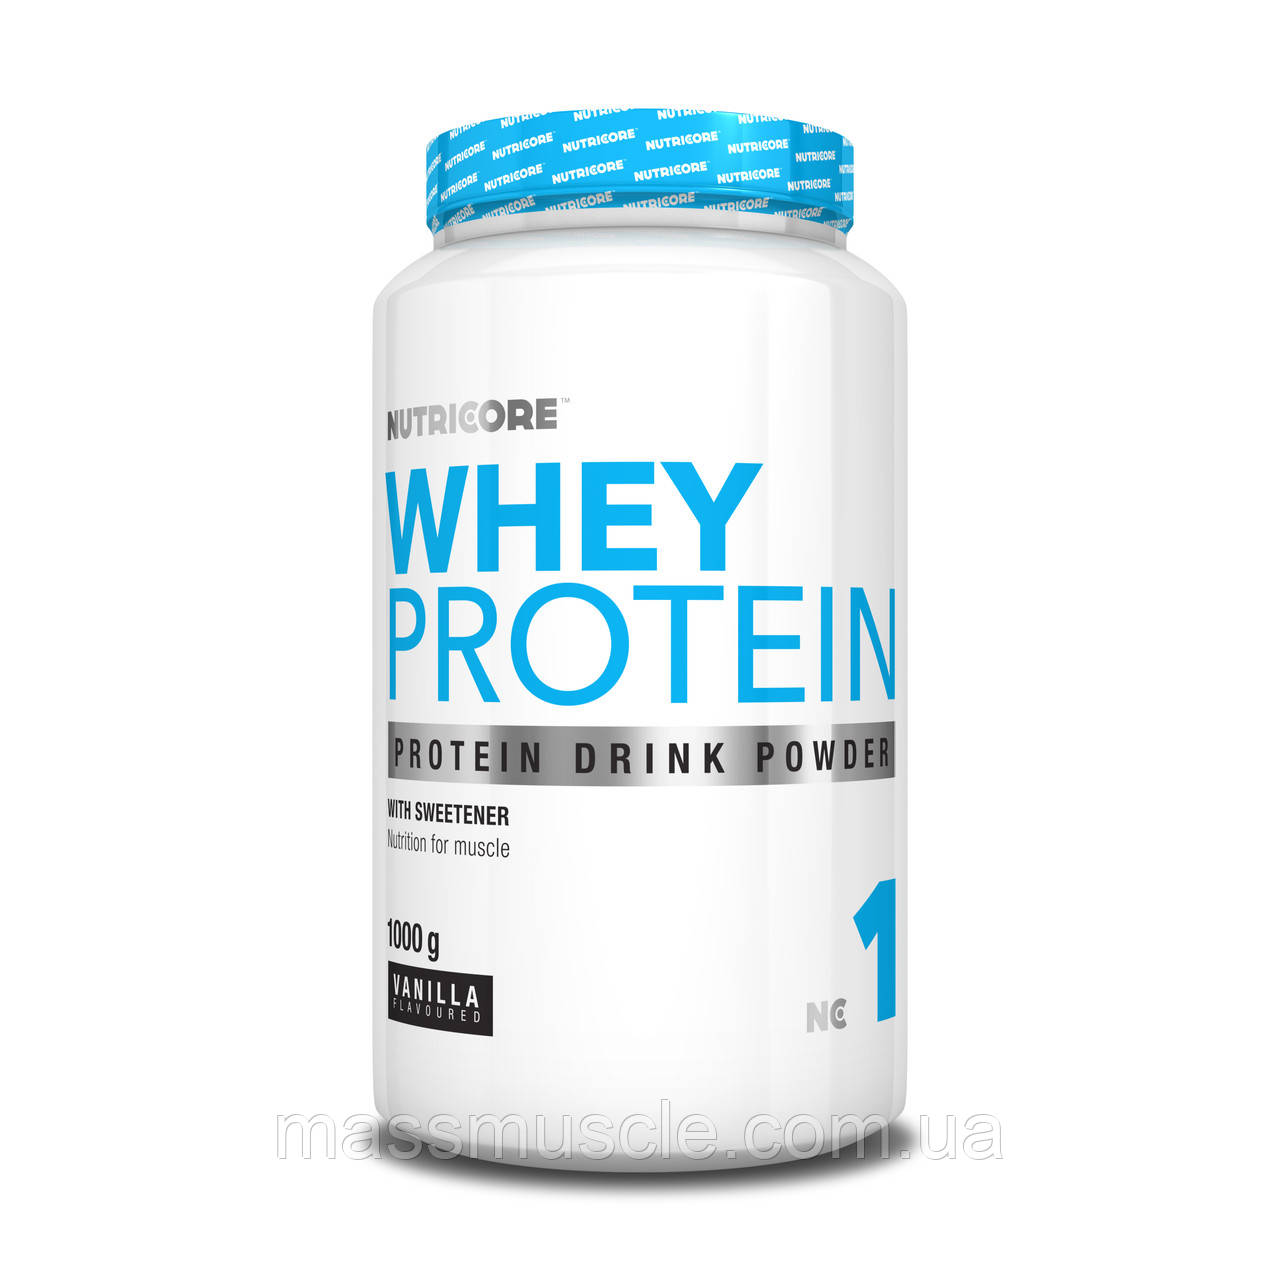 Протеин Nutricore Whey Protein 1000 g